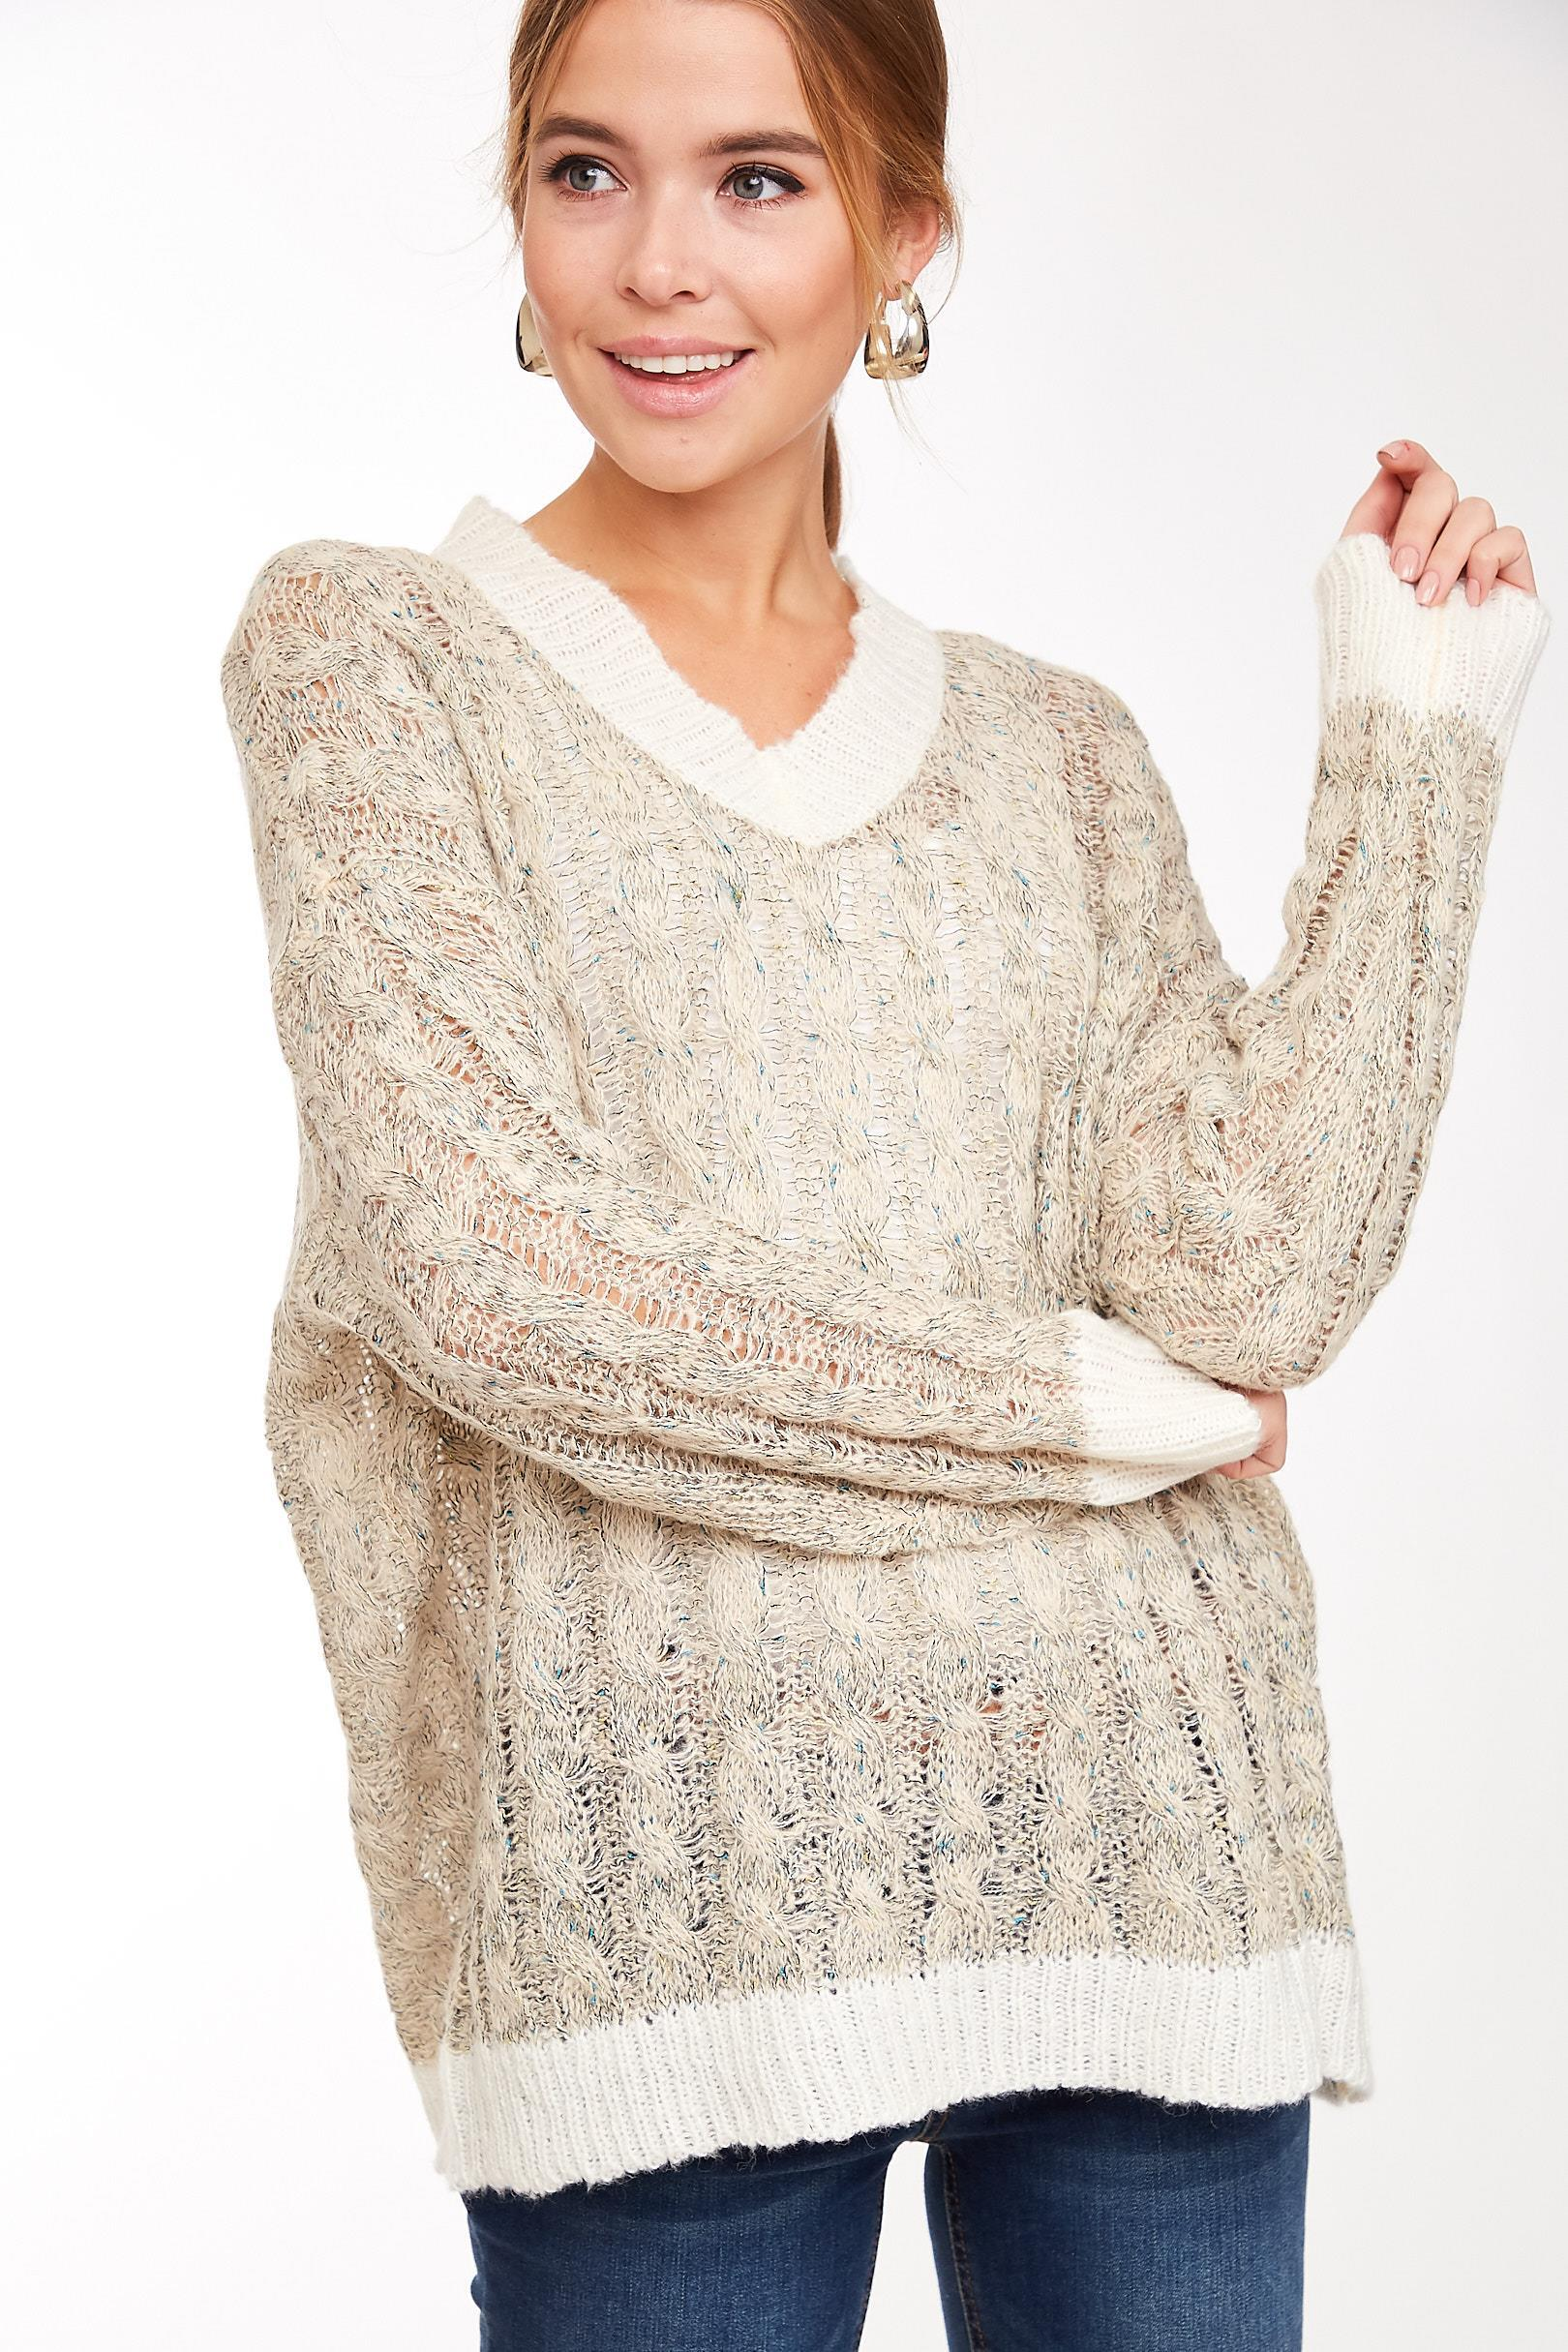 Sing For Me Loose-Knit V Neck Lurex Light Knit Sweater Top